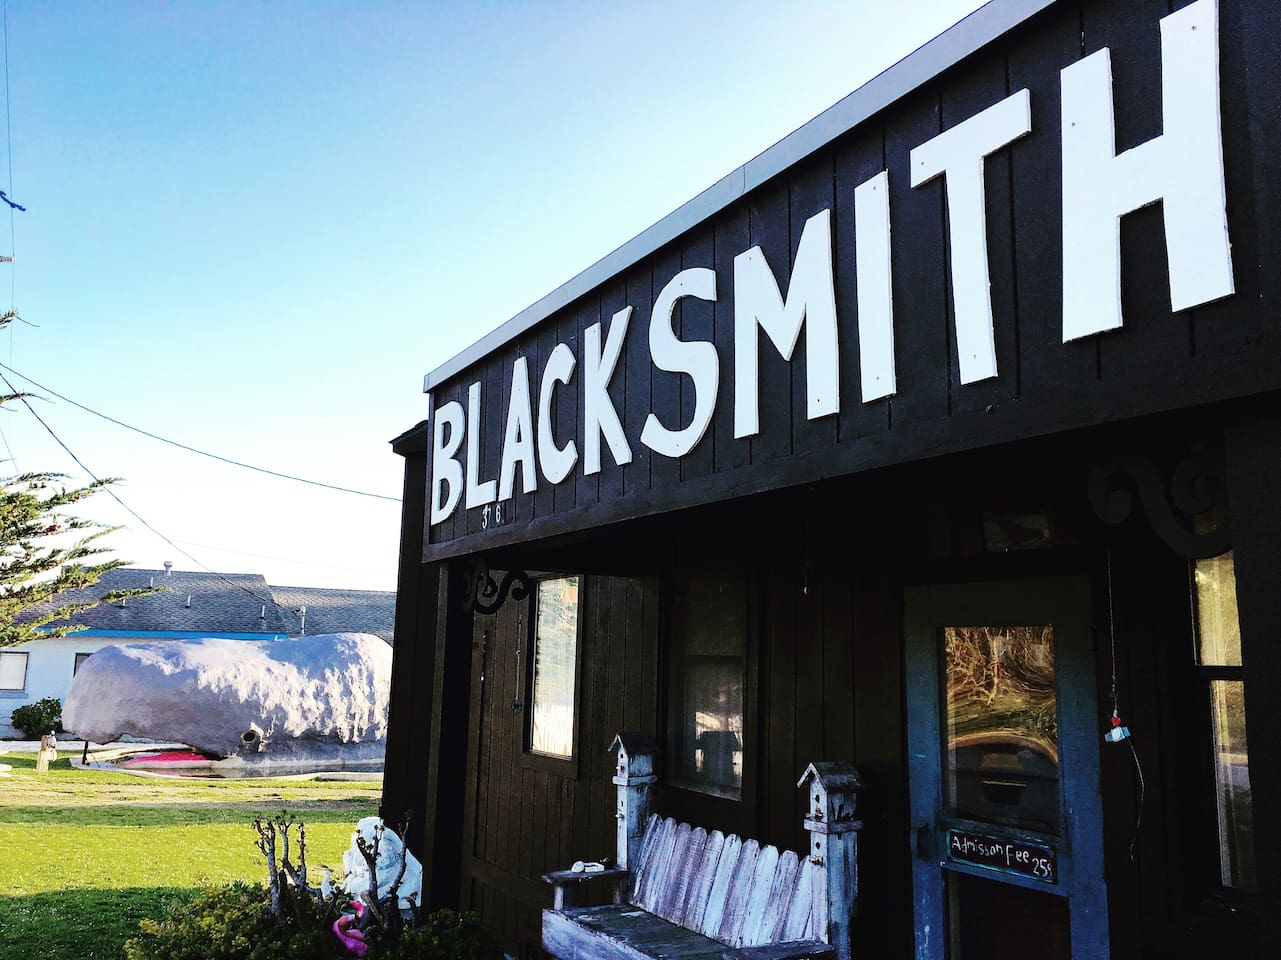 Blacksmith shop and Whale